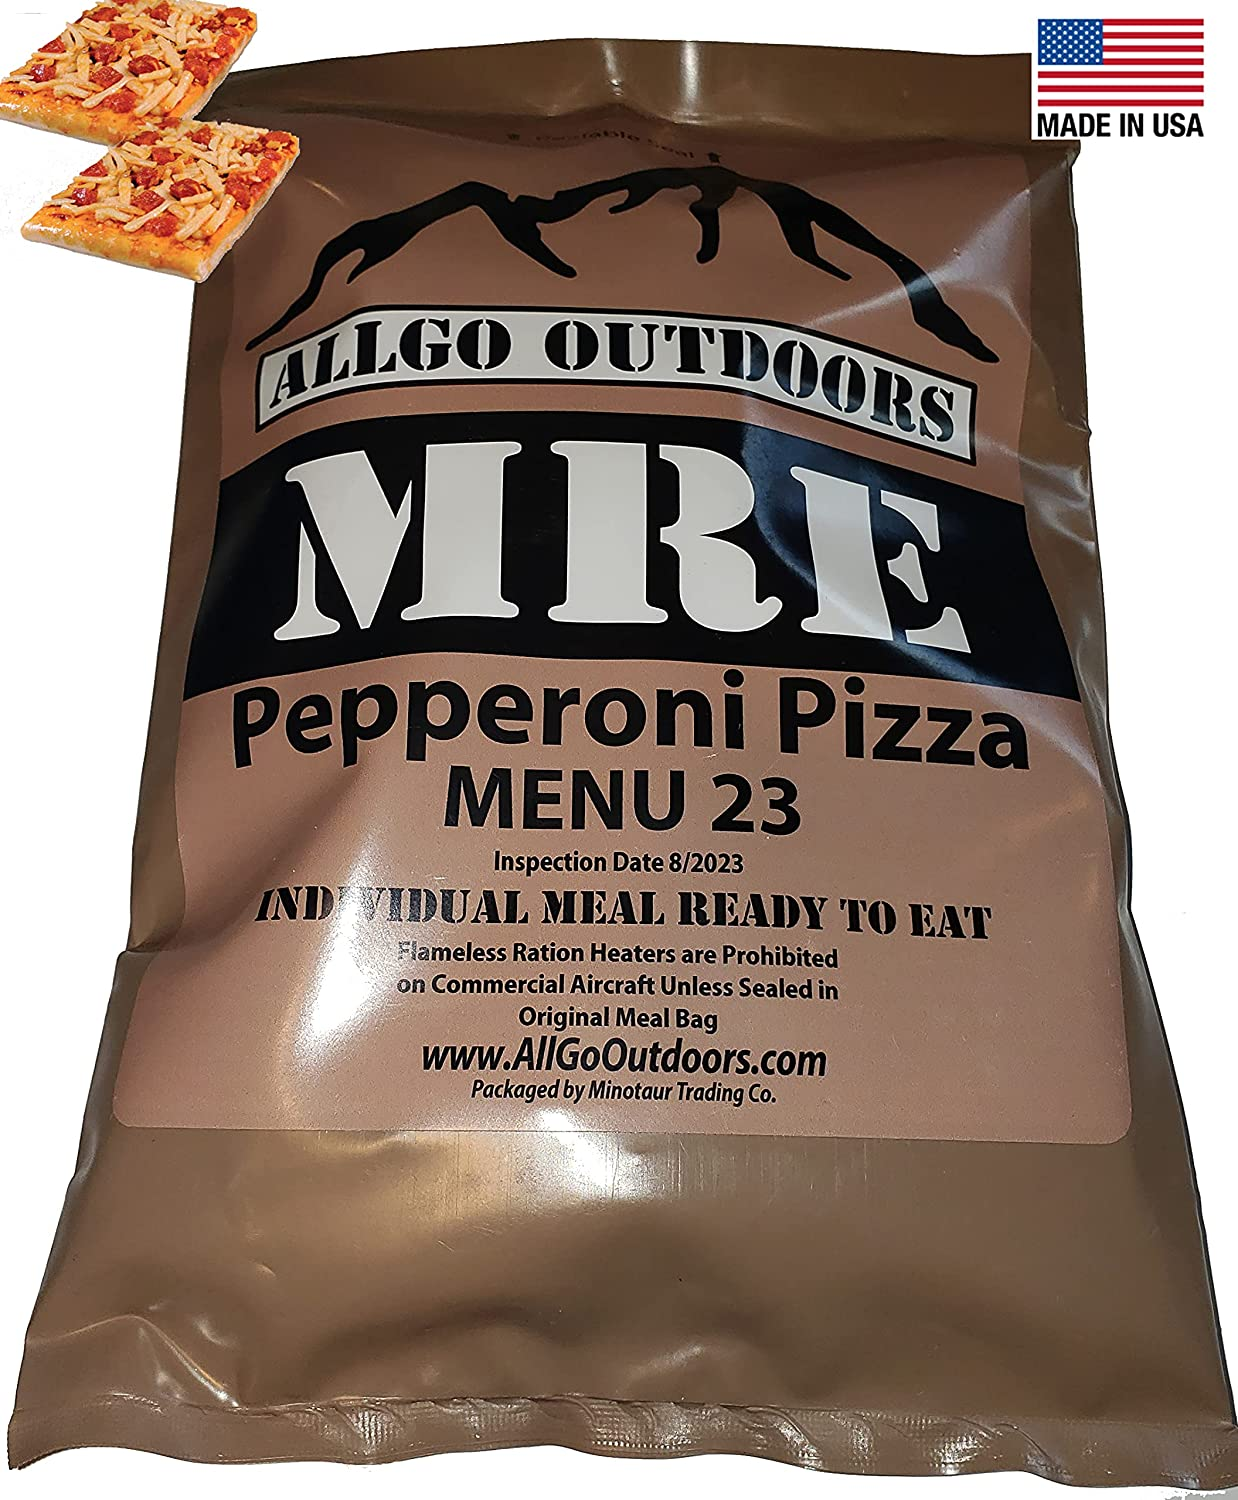 Challenge the lowest price of Japan AllGo Outdoors MRE Pizza Meal Pepperoni 23 Challenge the lowest price 2023+ with